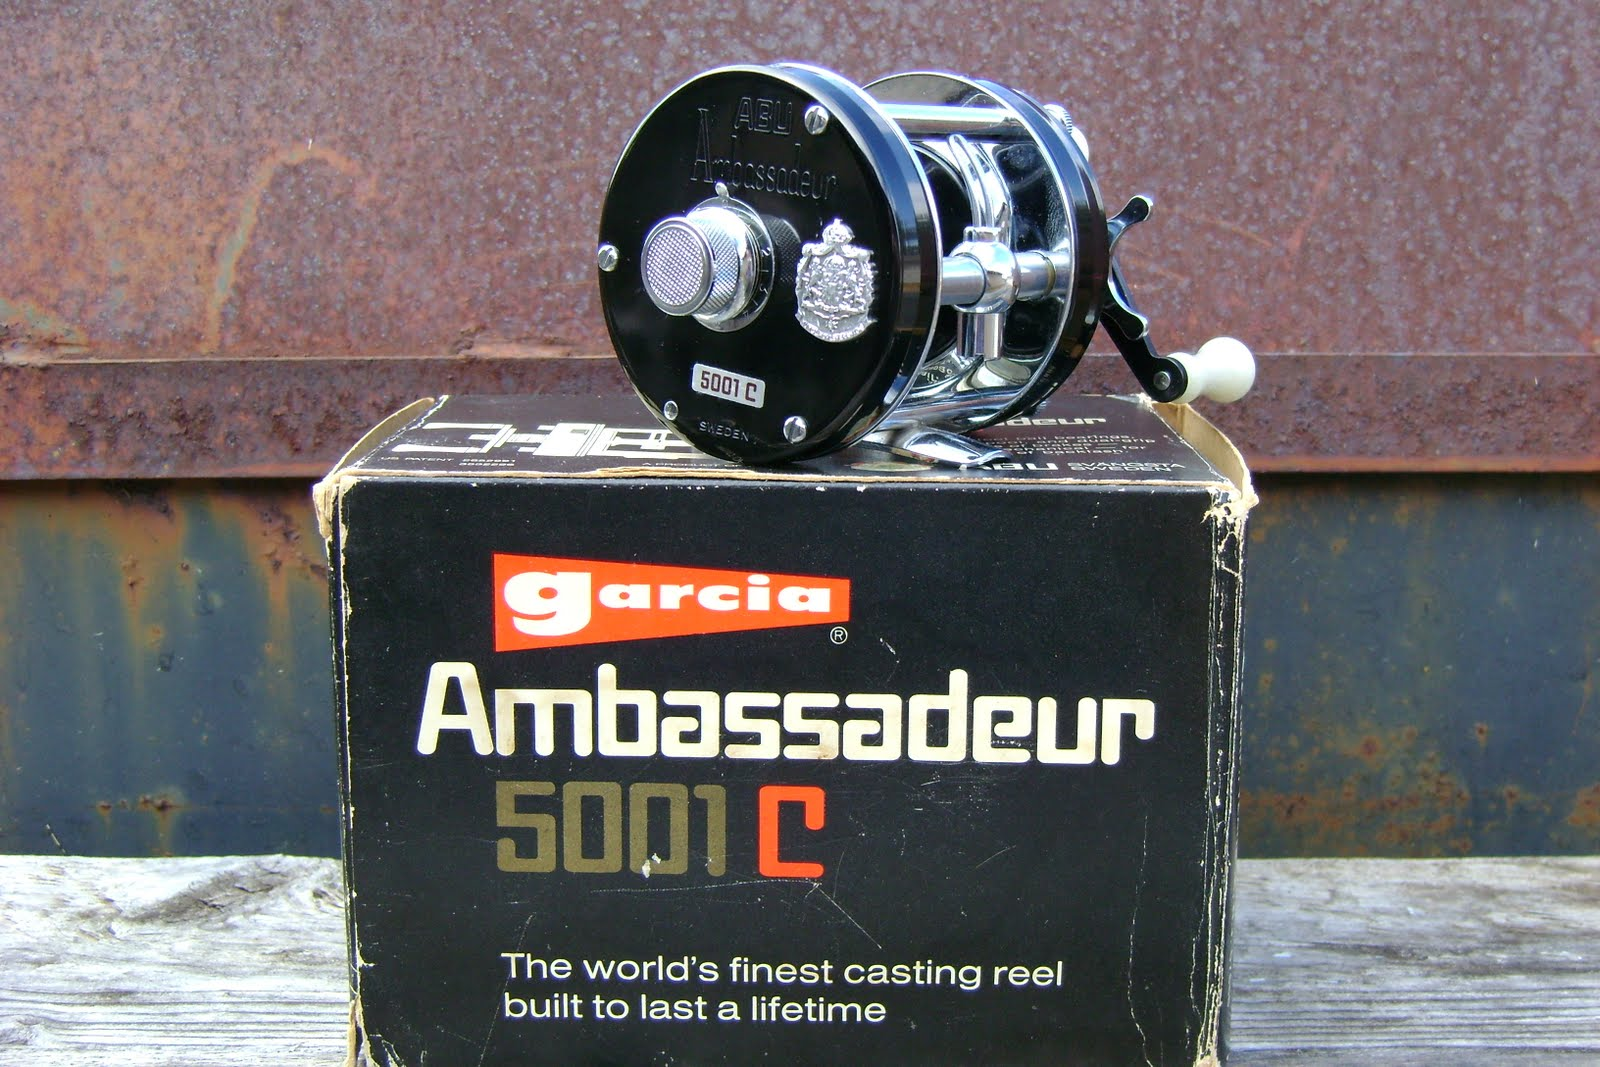 Fred's Classic ABU Reel Information